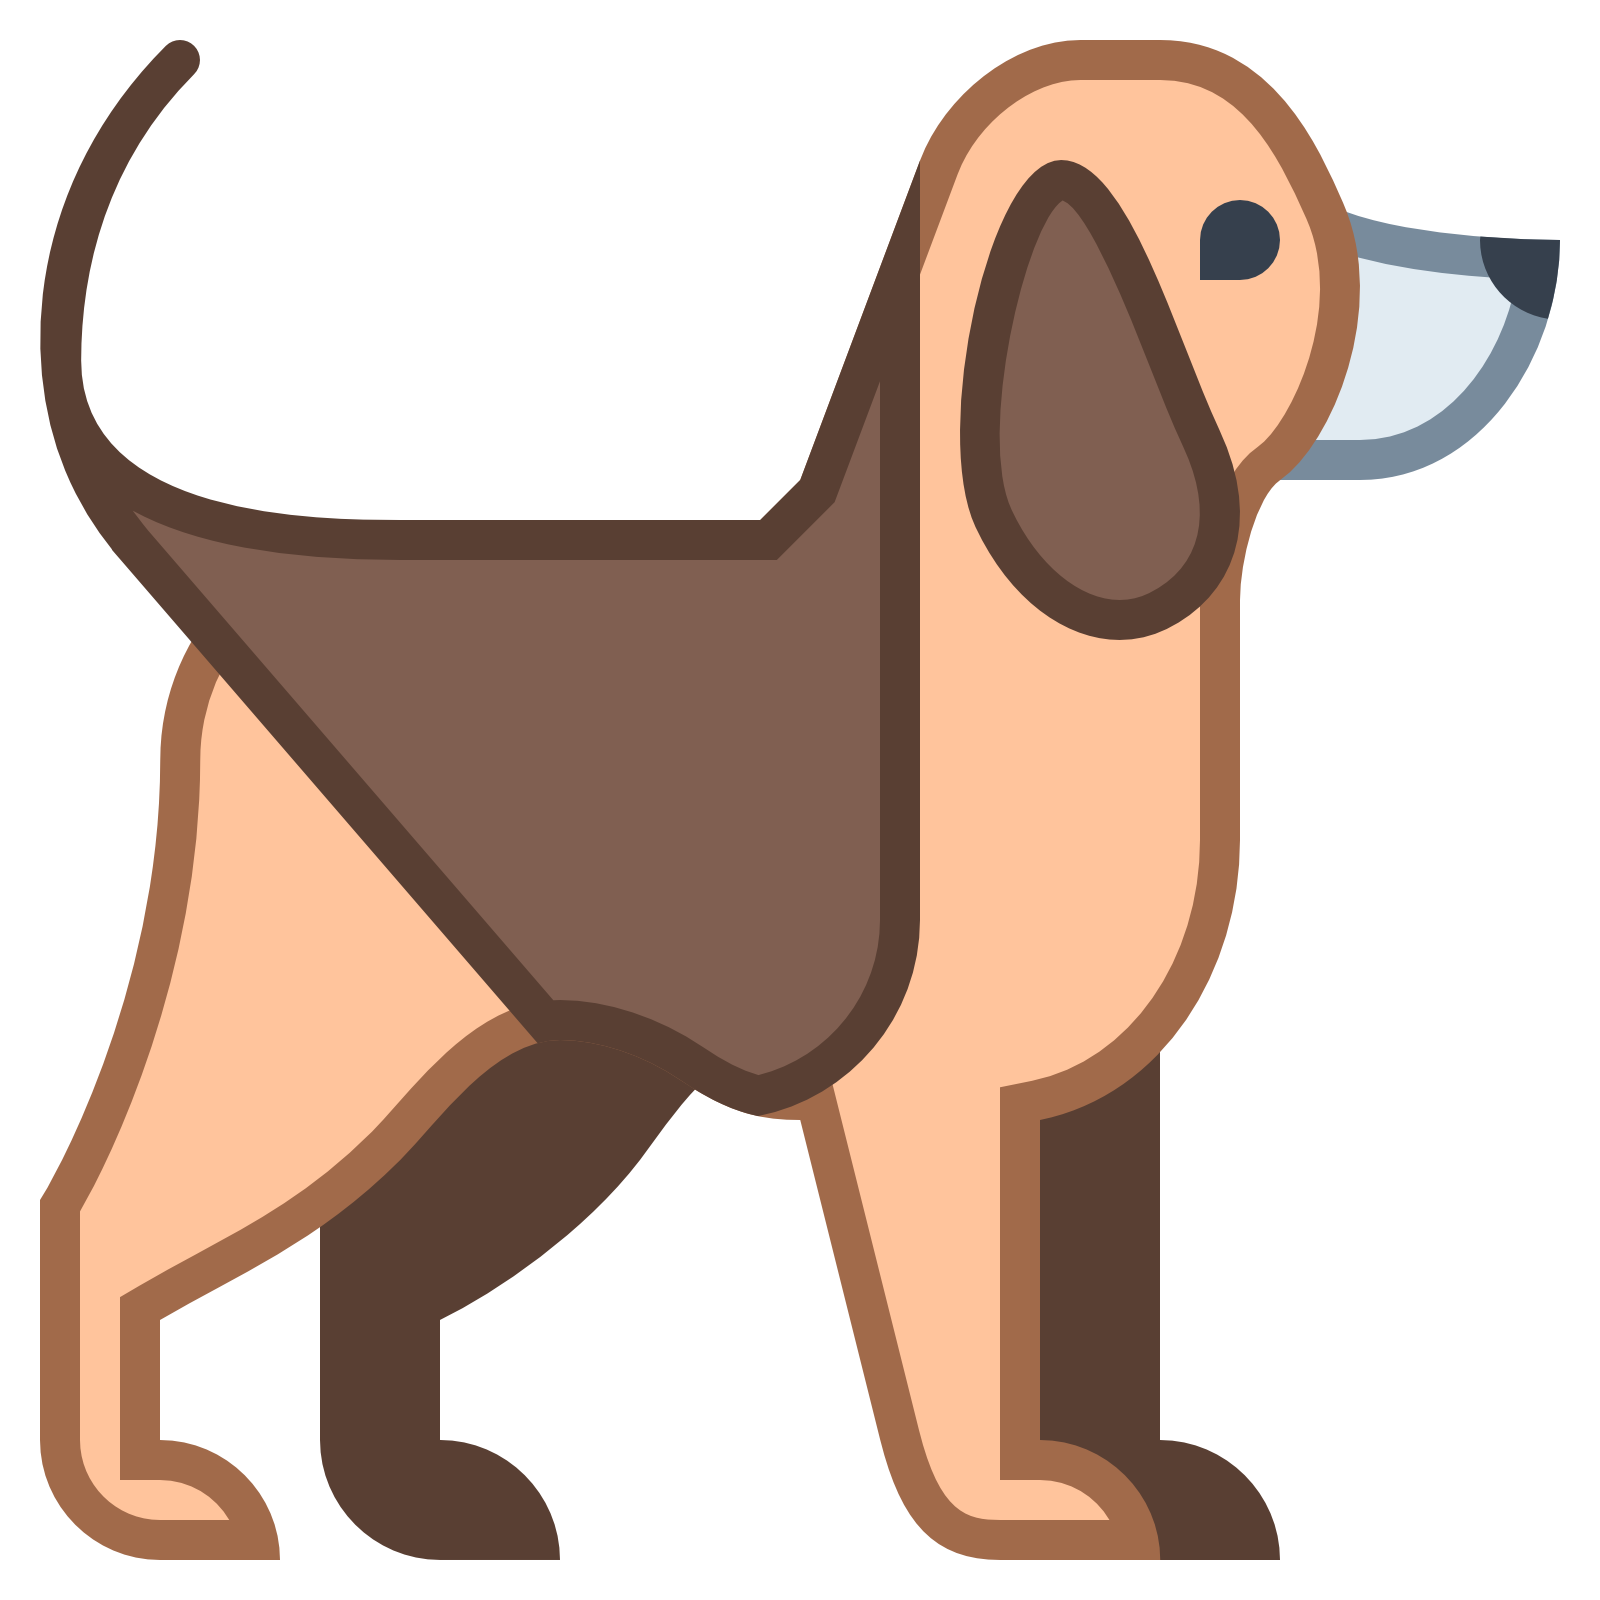 Short tail dog clipart free jpg freeuse stock Dog Icon - Free Download at Icons8 jpg freeuse stock